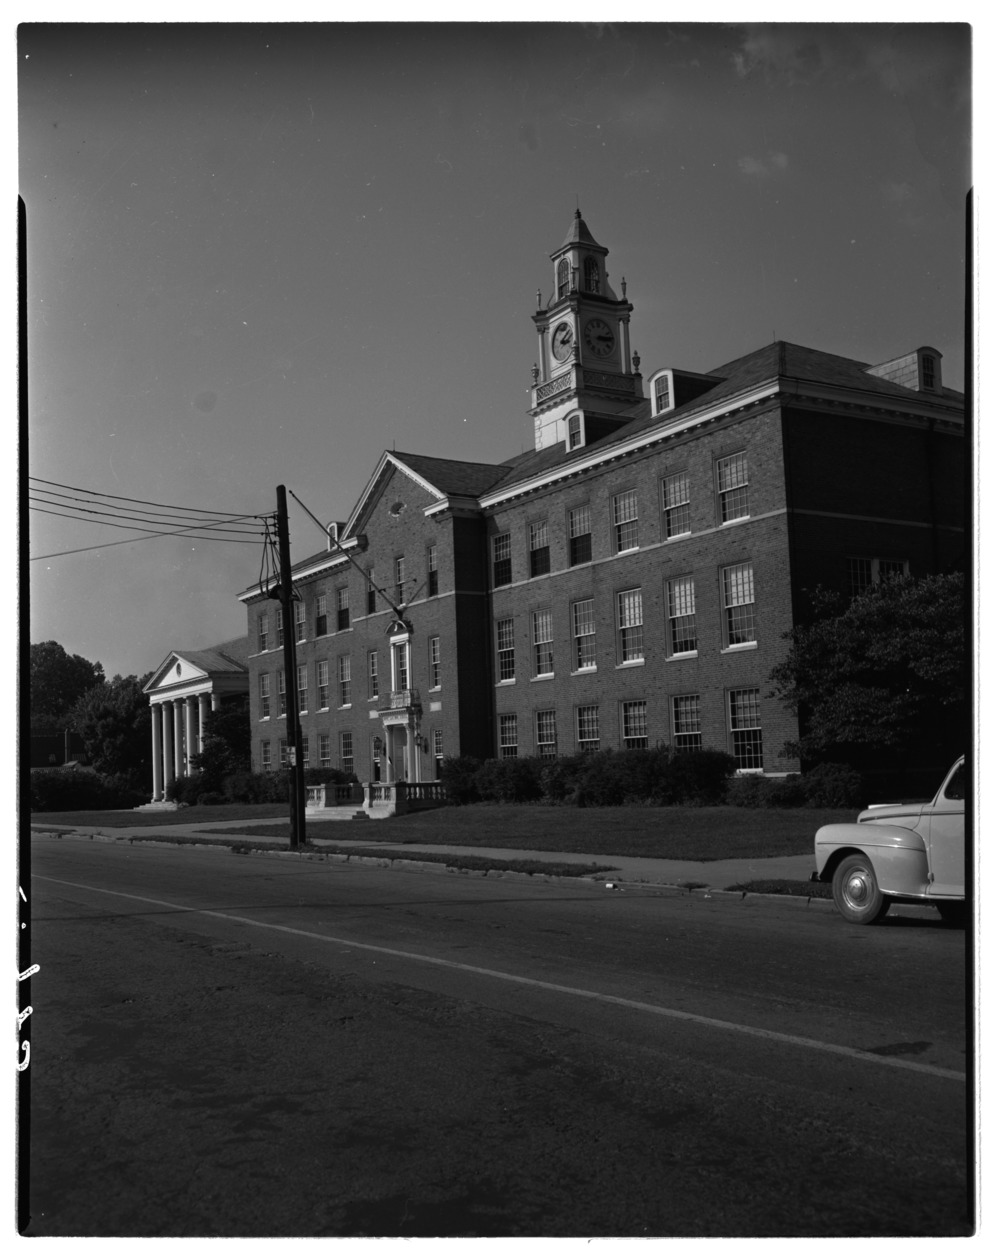 Negatives used in making up section head in 'Back to School' edition of Herald-Leader.  Building shown is Henry Clay…